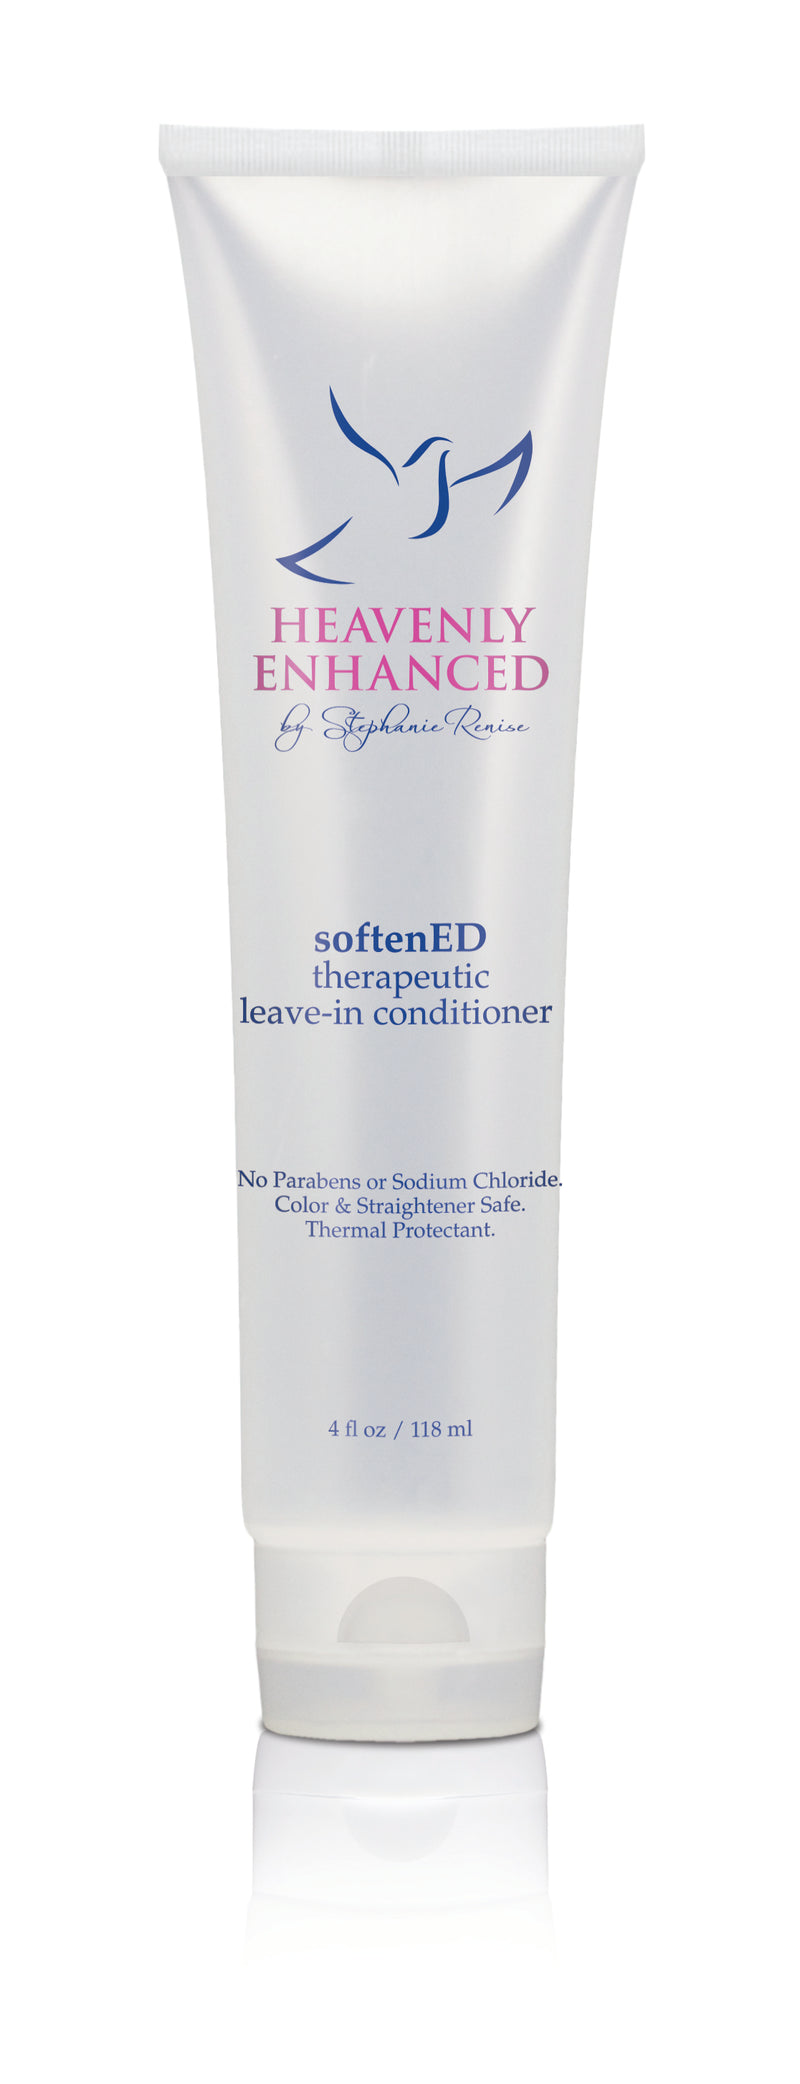 softenED - therapeutic leave-in conditioner